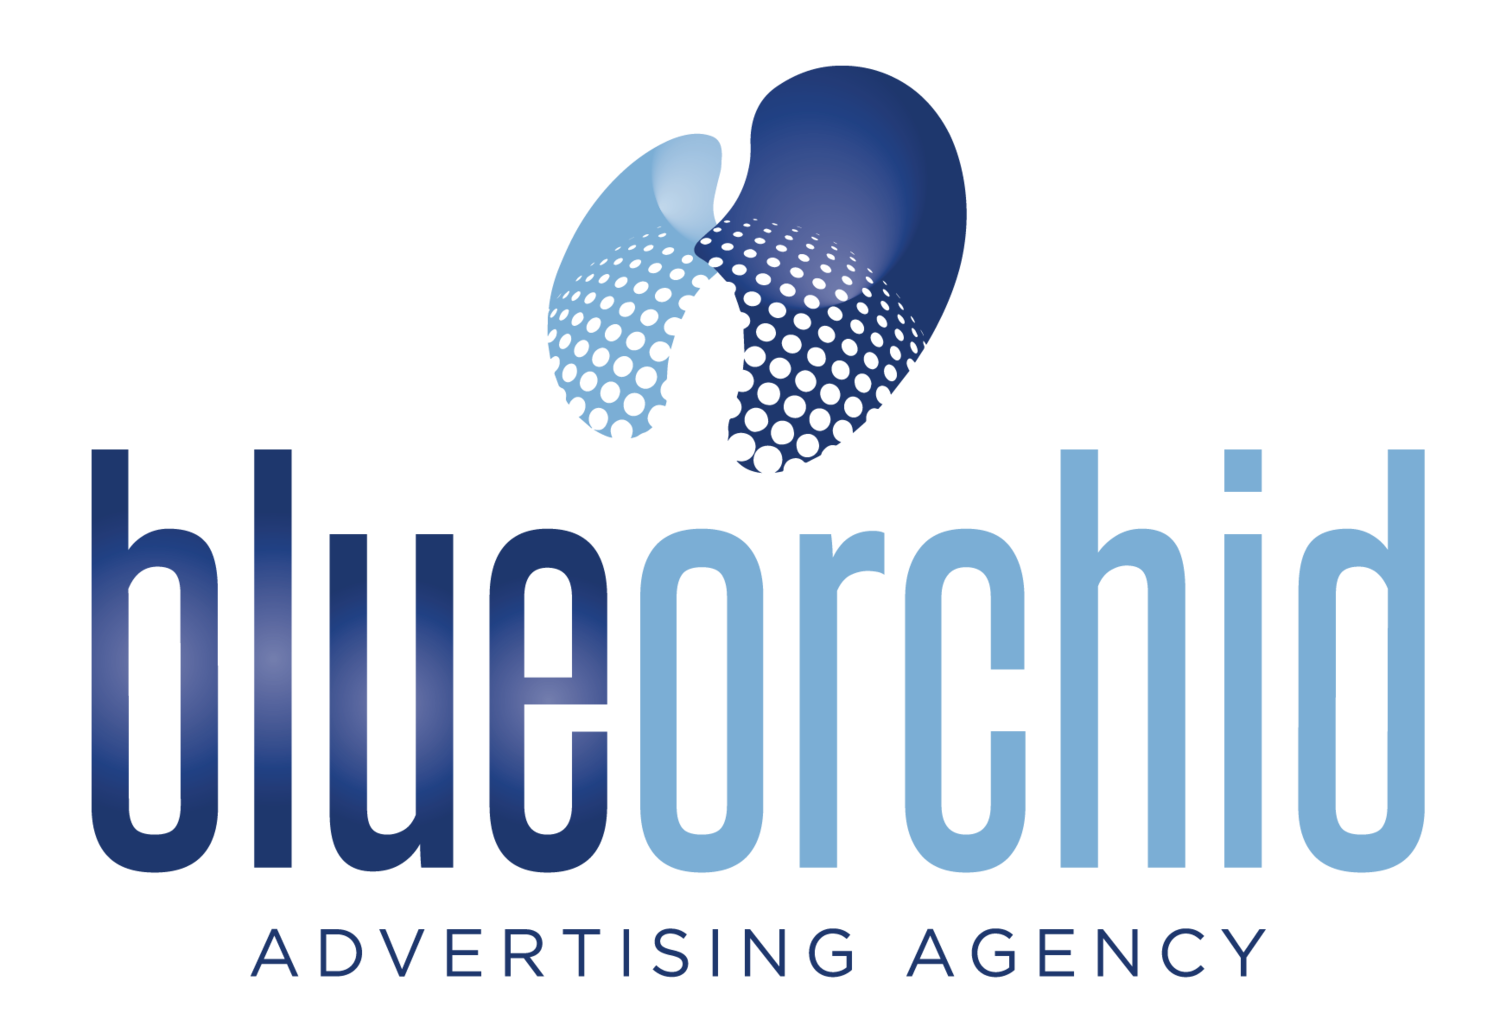 Blue Orchid Advertising